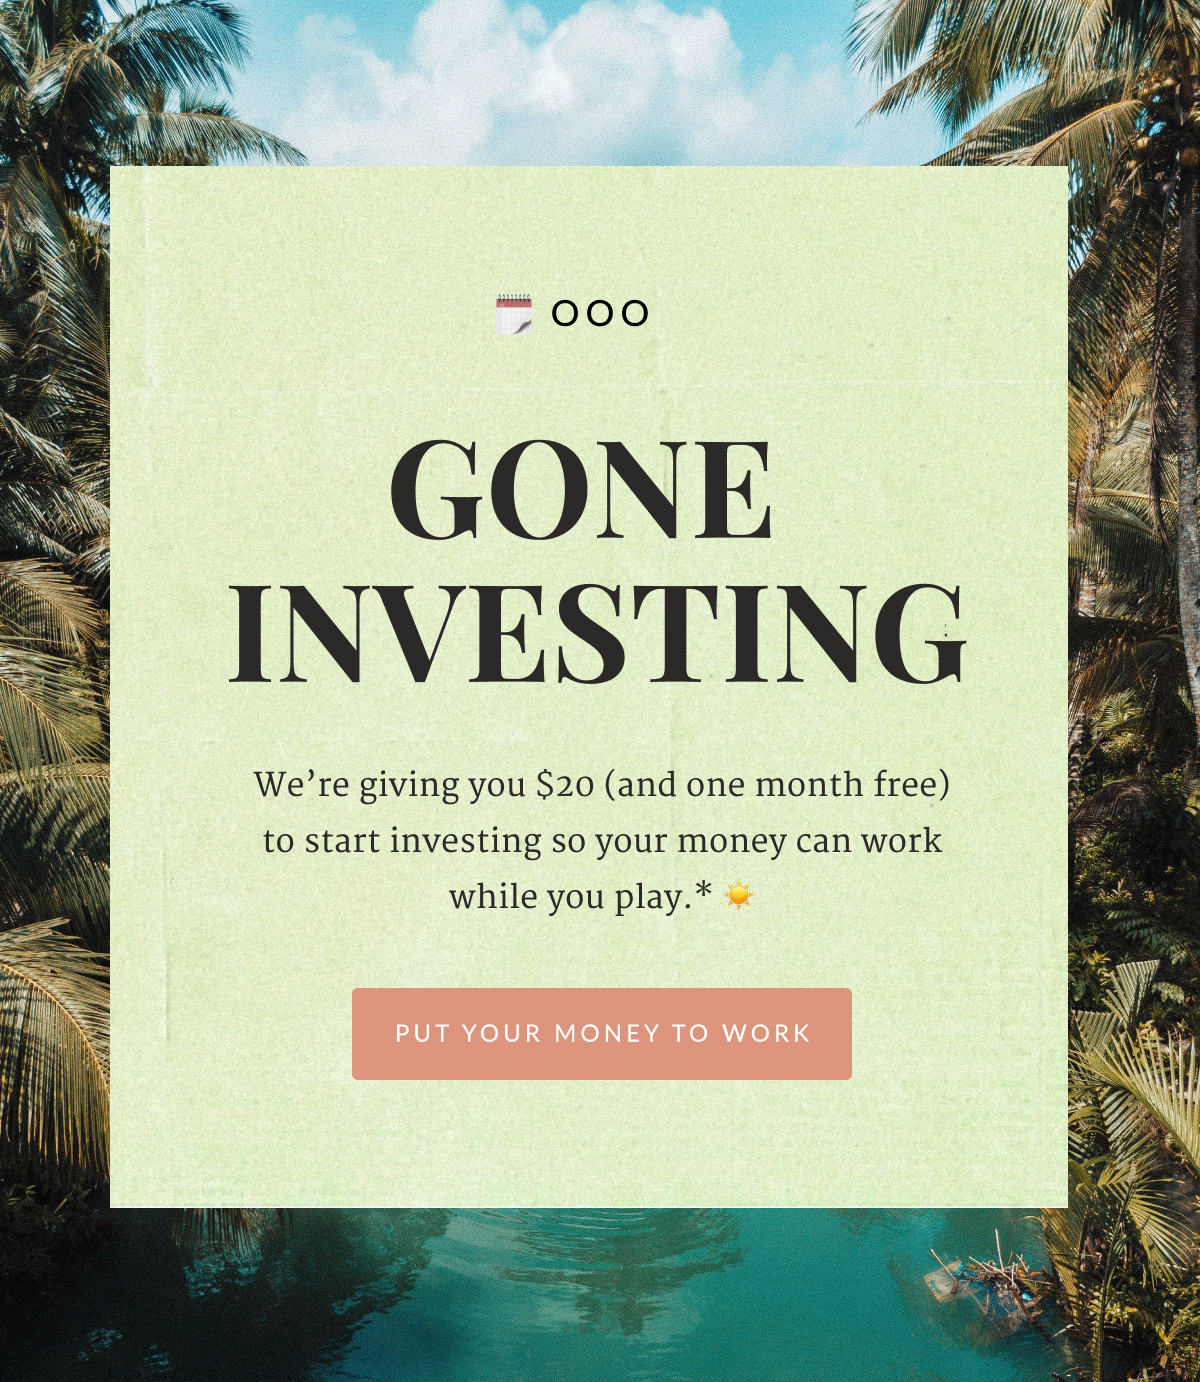 """Text graphic that reads, """"OOO: GONE INVESTING. We're giving you $20 (and one month free) to start investing so your money can work while you play.* Put your money to work."""""""